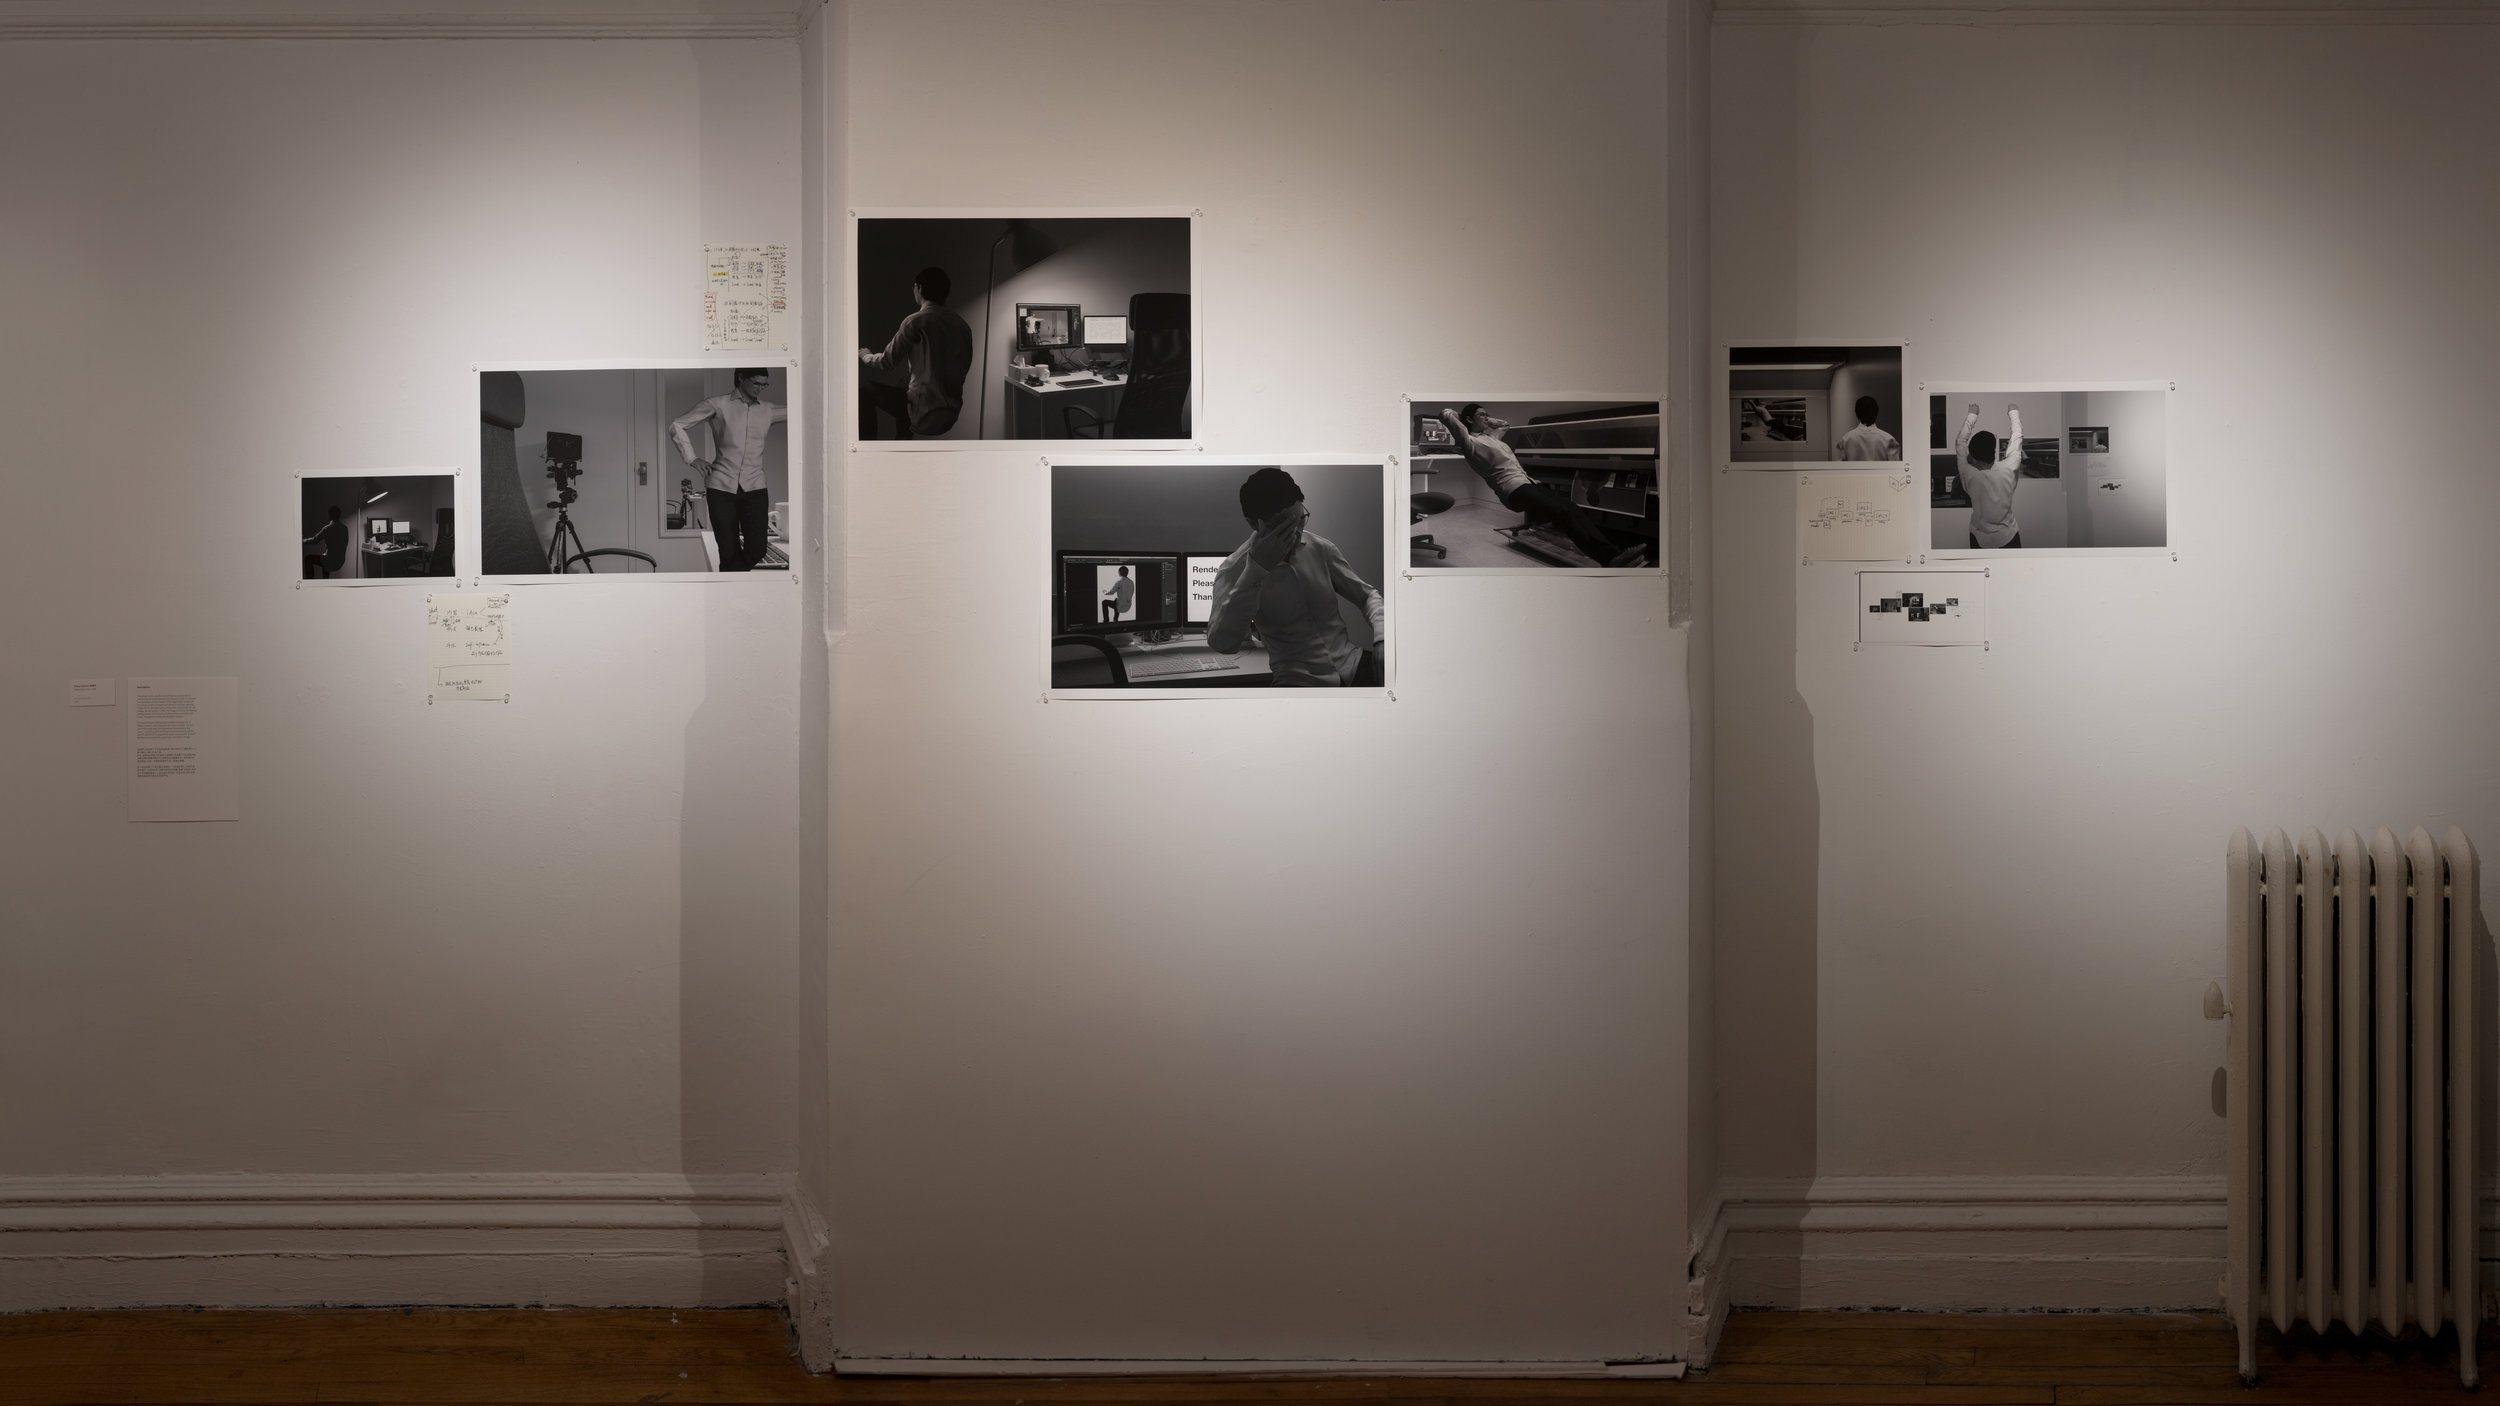 Version Installed at Fou Gallery, NY, 2018